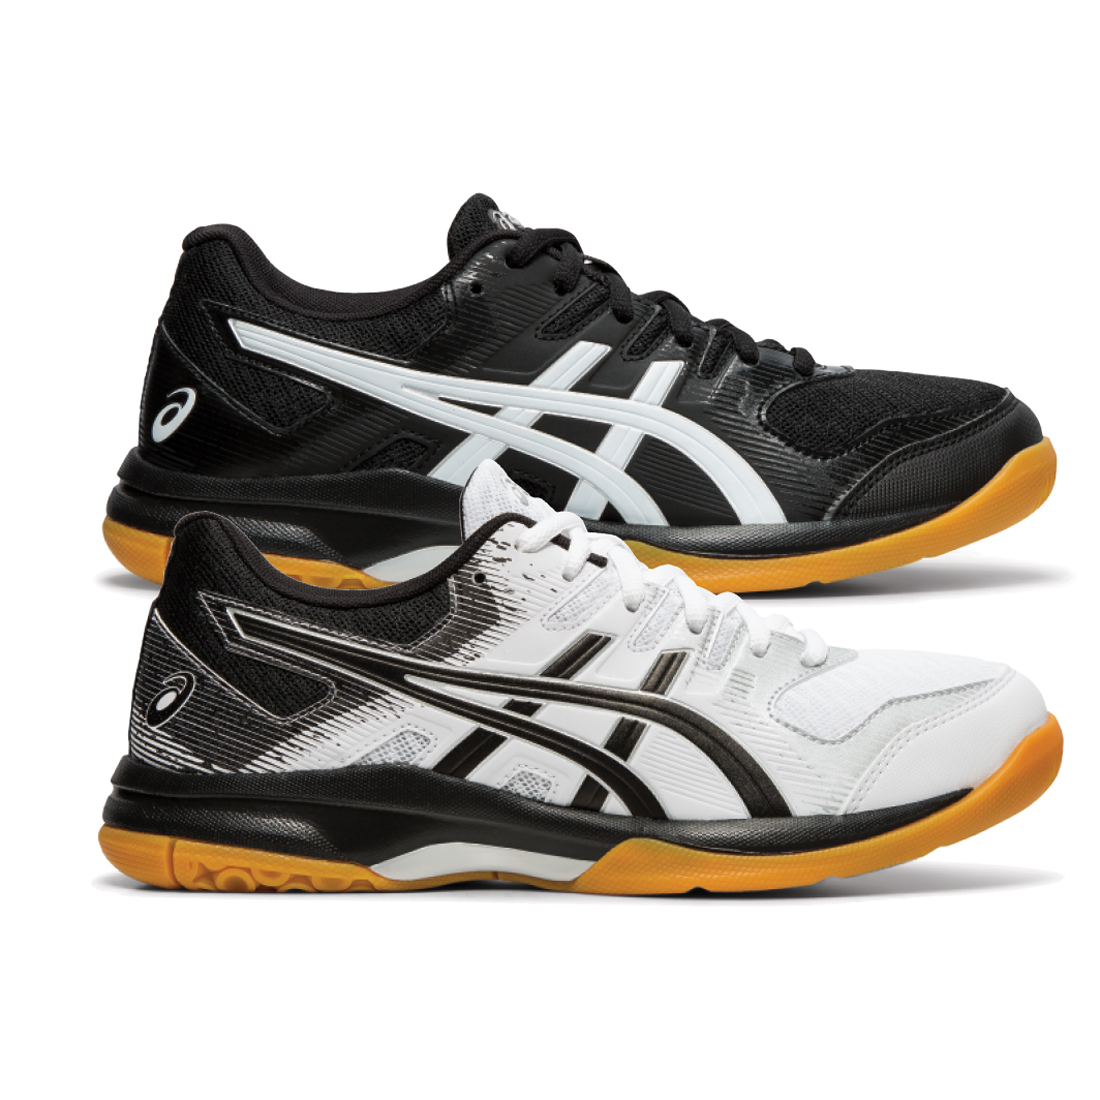 super quality save up to 60% new arrival Asics Gel-Rocket 9 Indoor Shoe - longstreth.com